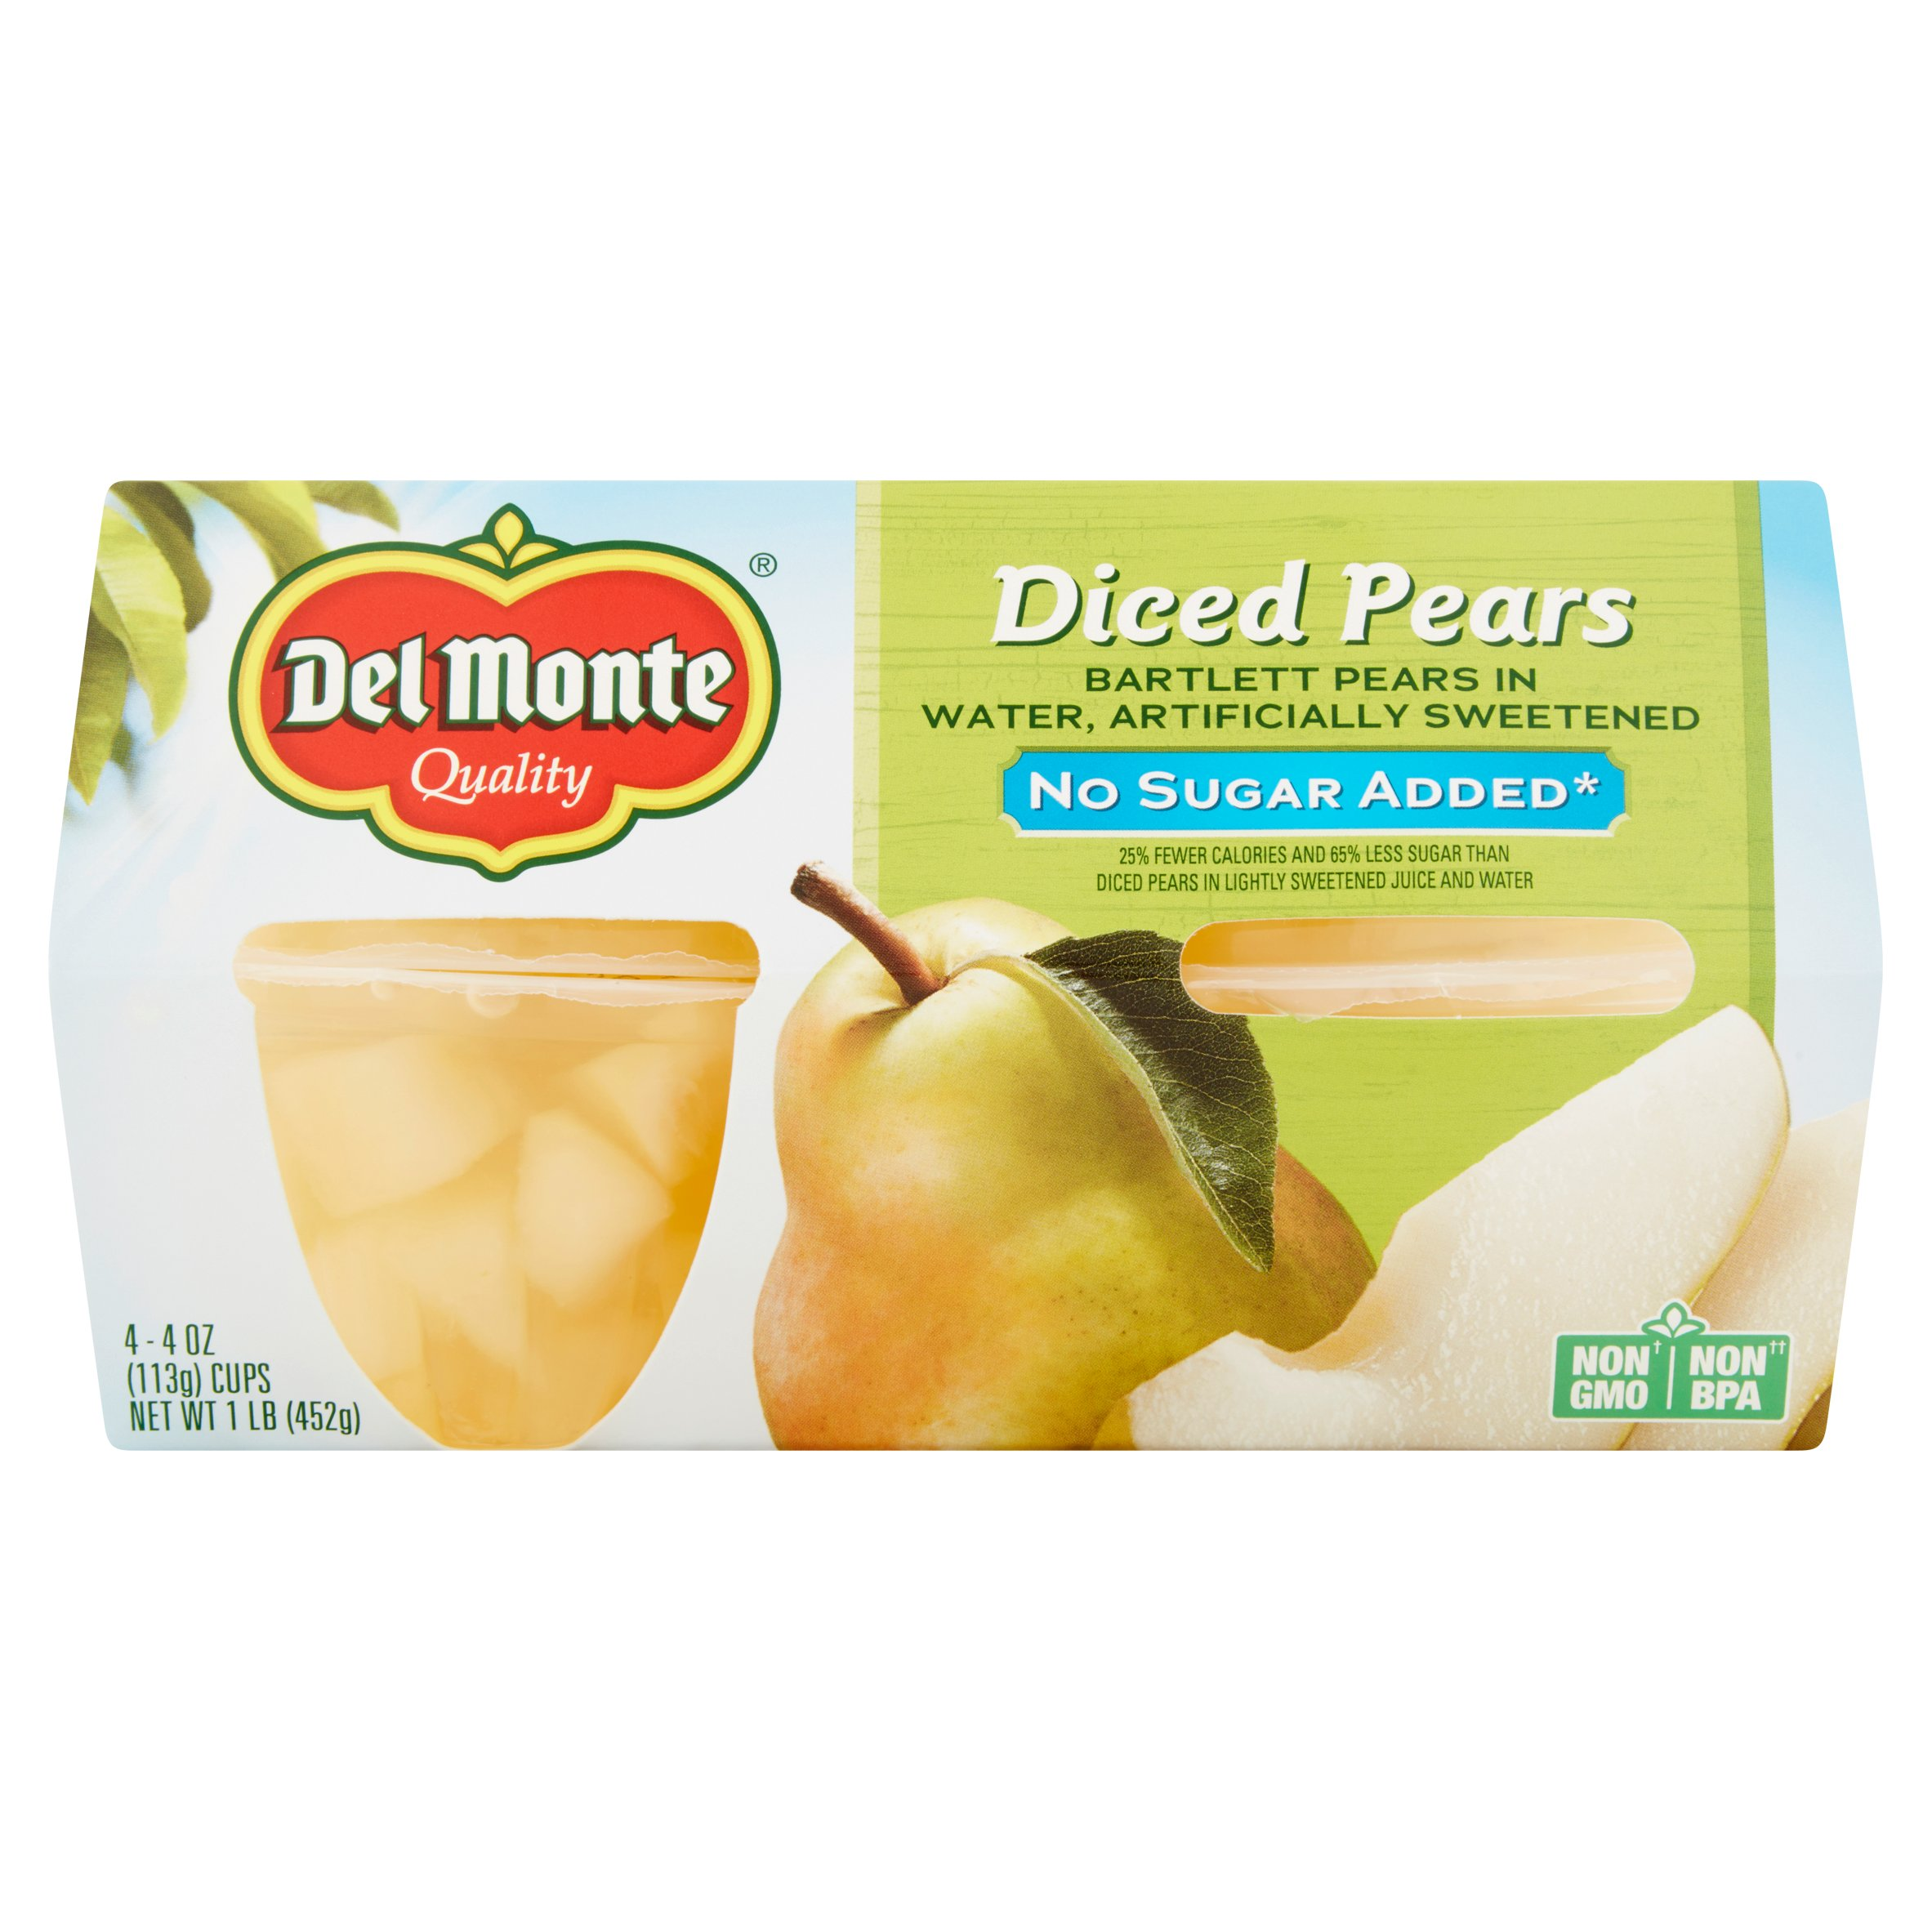 Del Monte No Sugar Added Diced Pears Bartlett Pears in Water, 4 oz, 4 count by Del Monte Foods